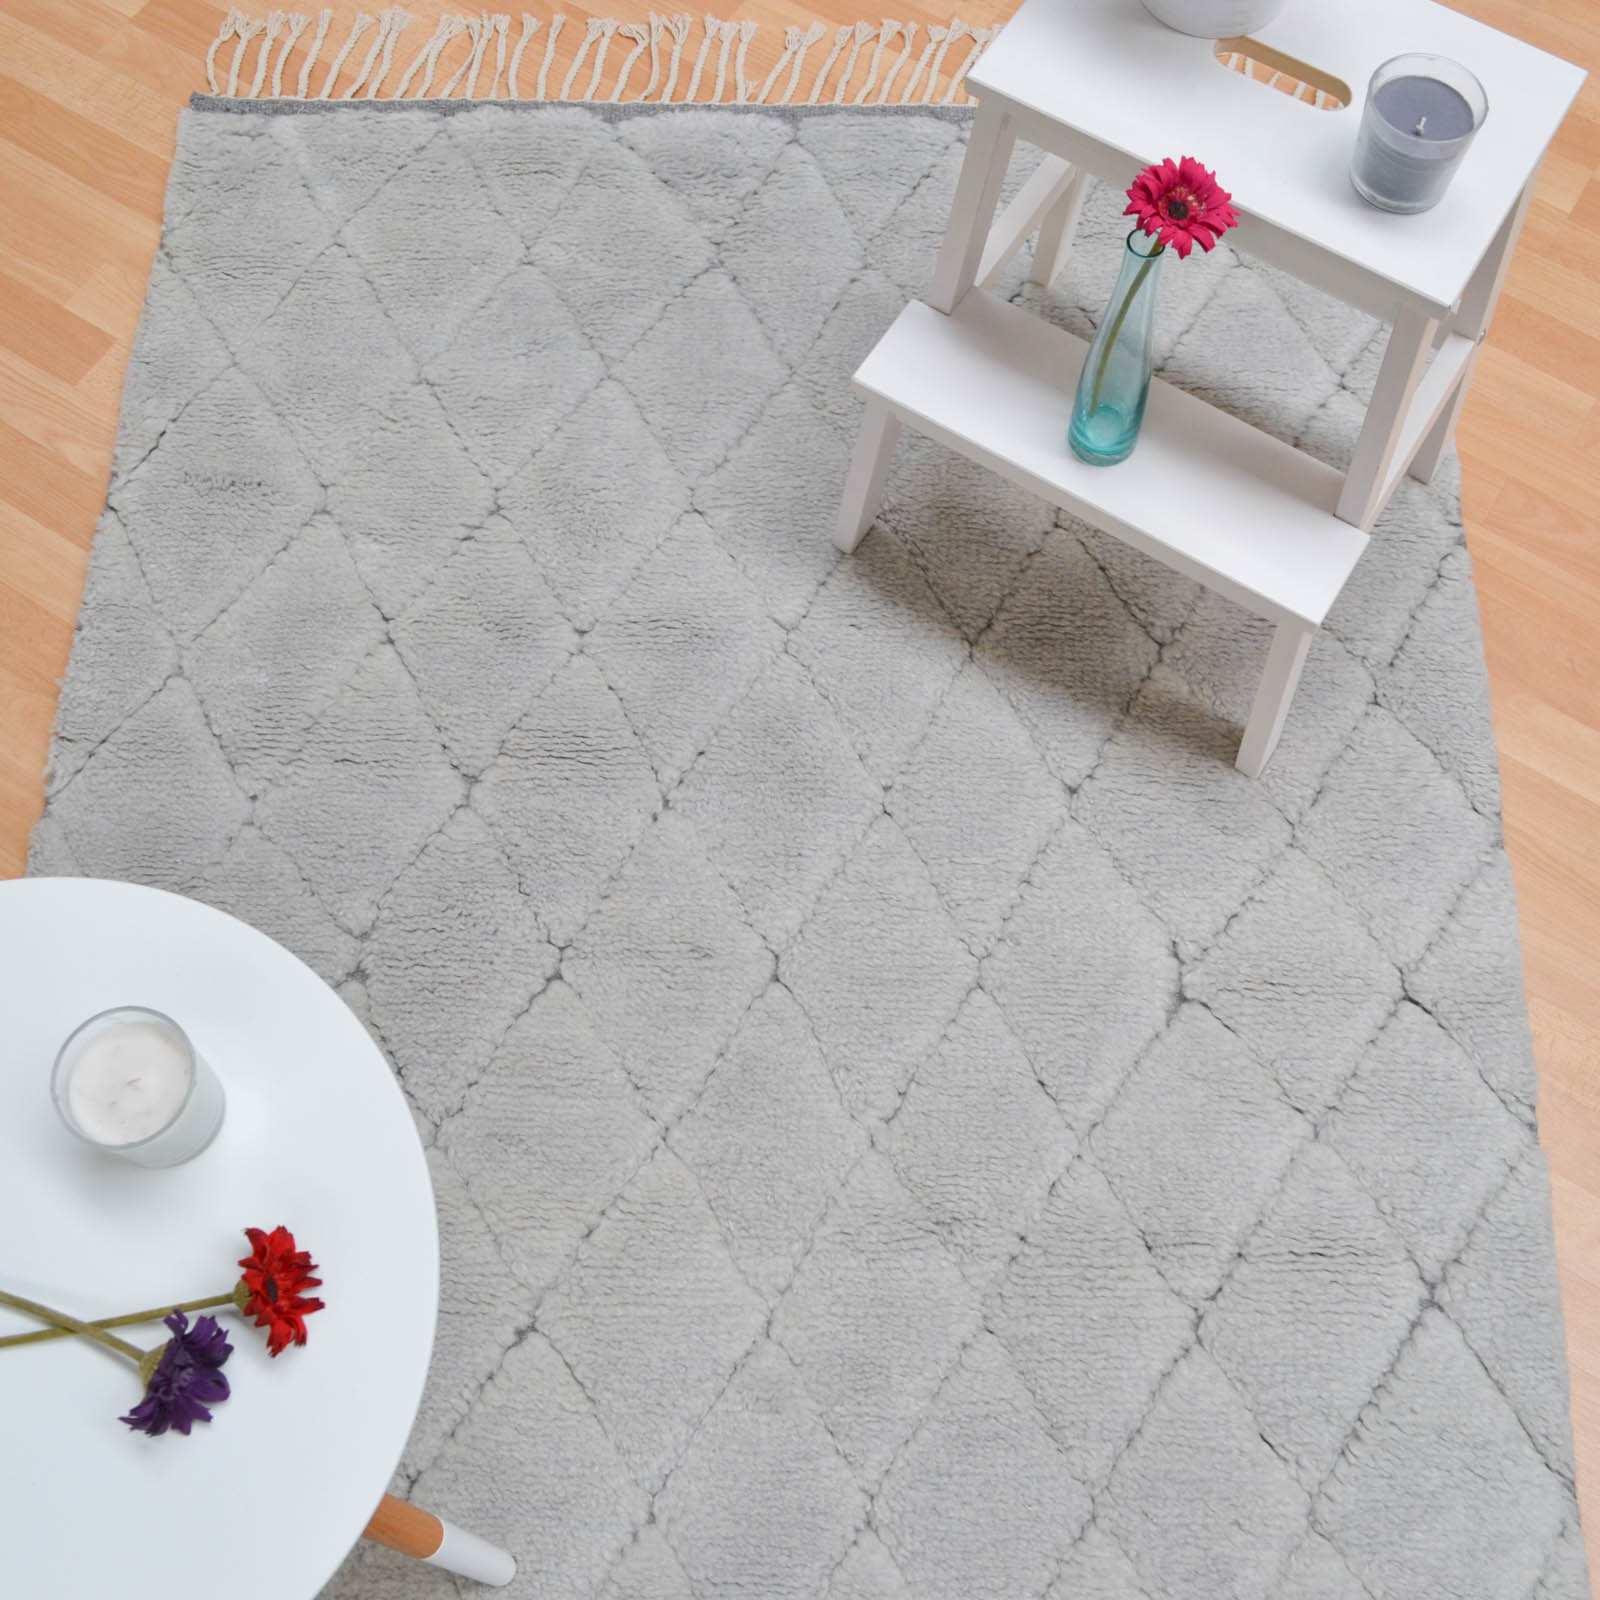 Echo Rugs ECH03 in Light Grey